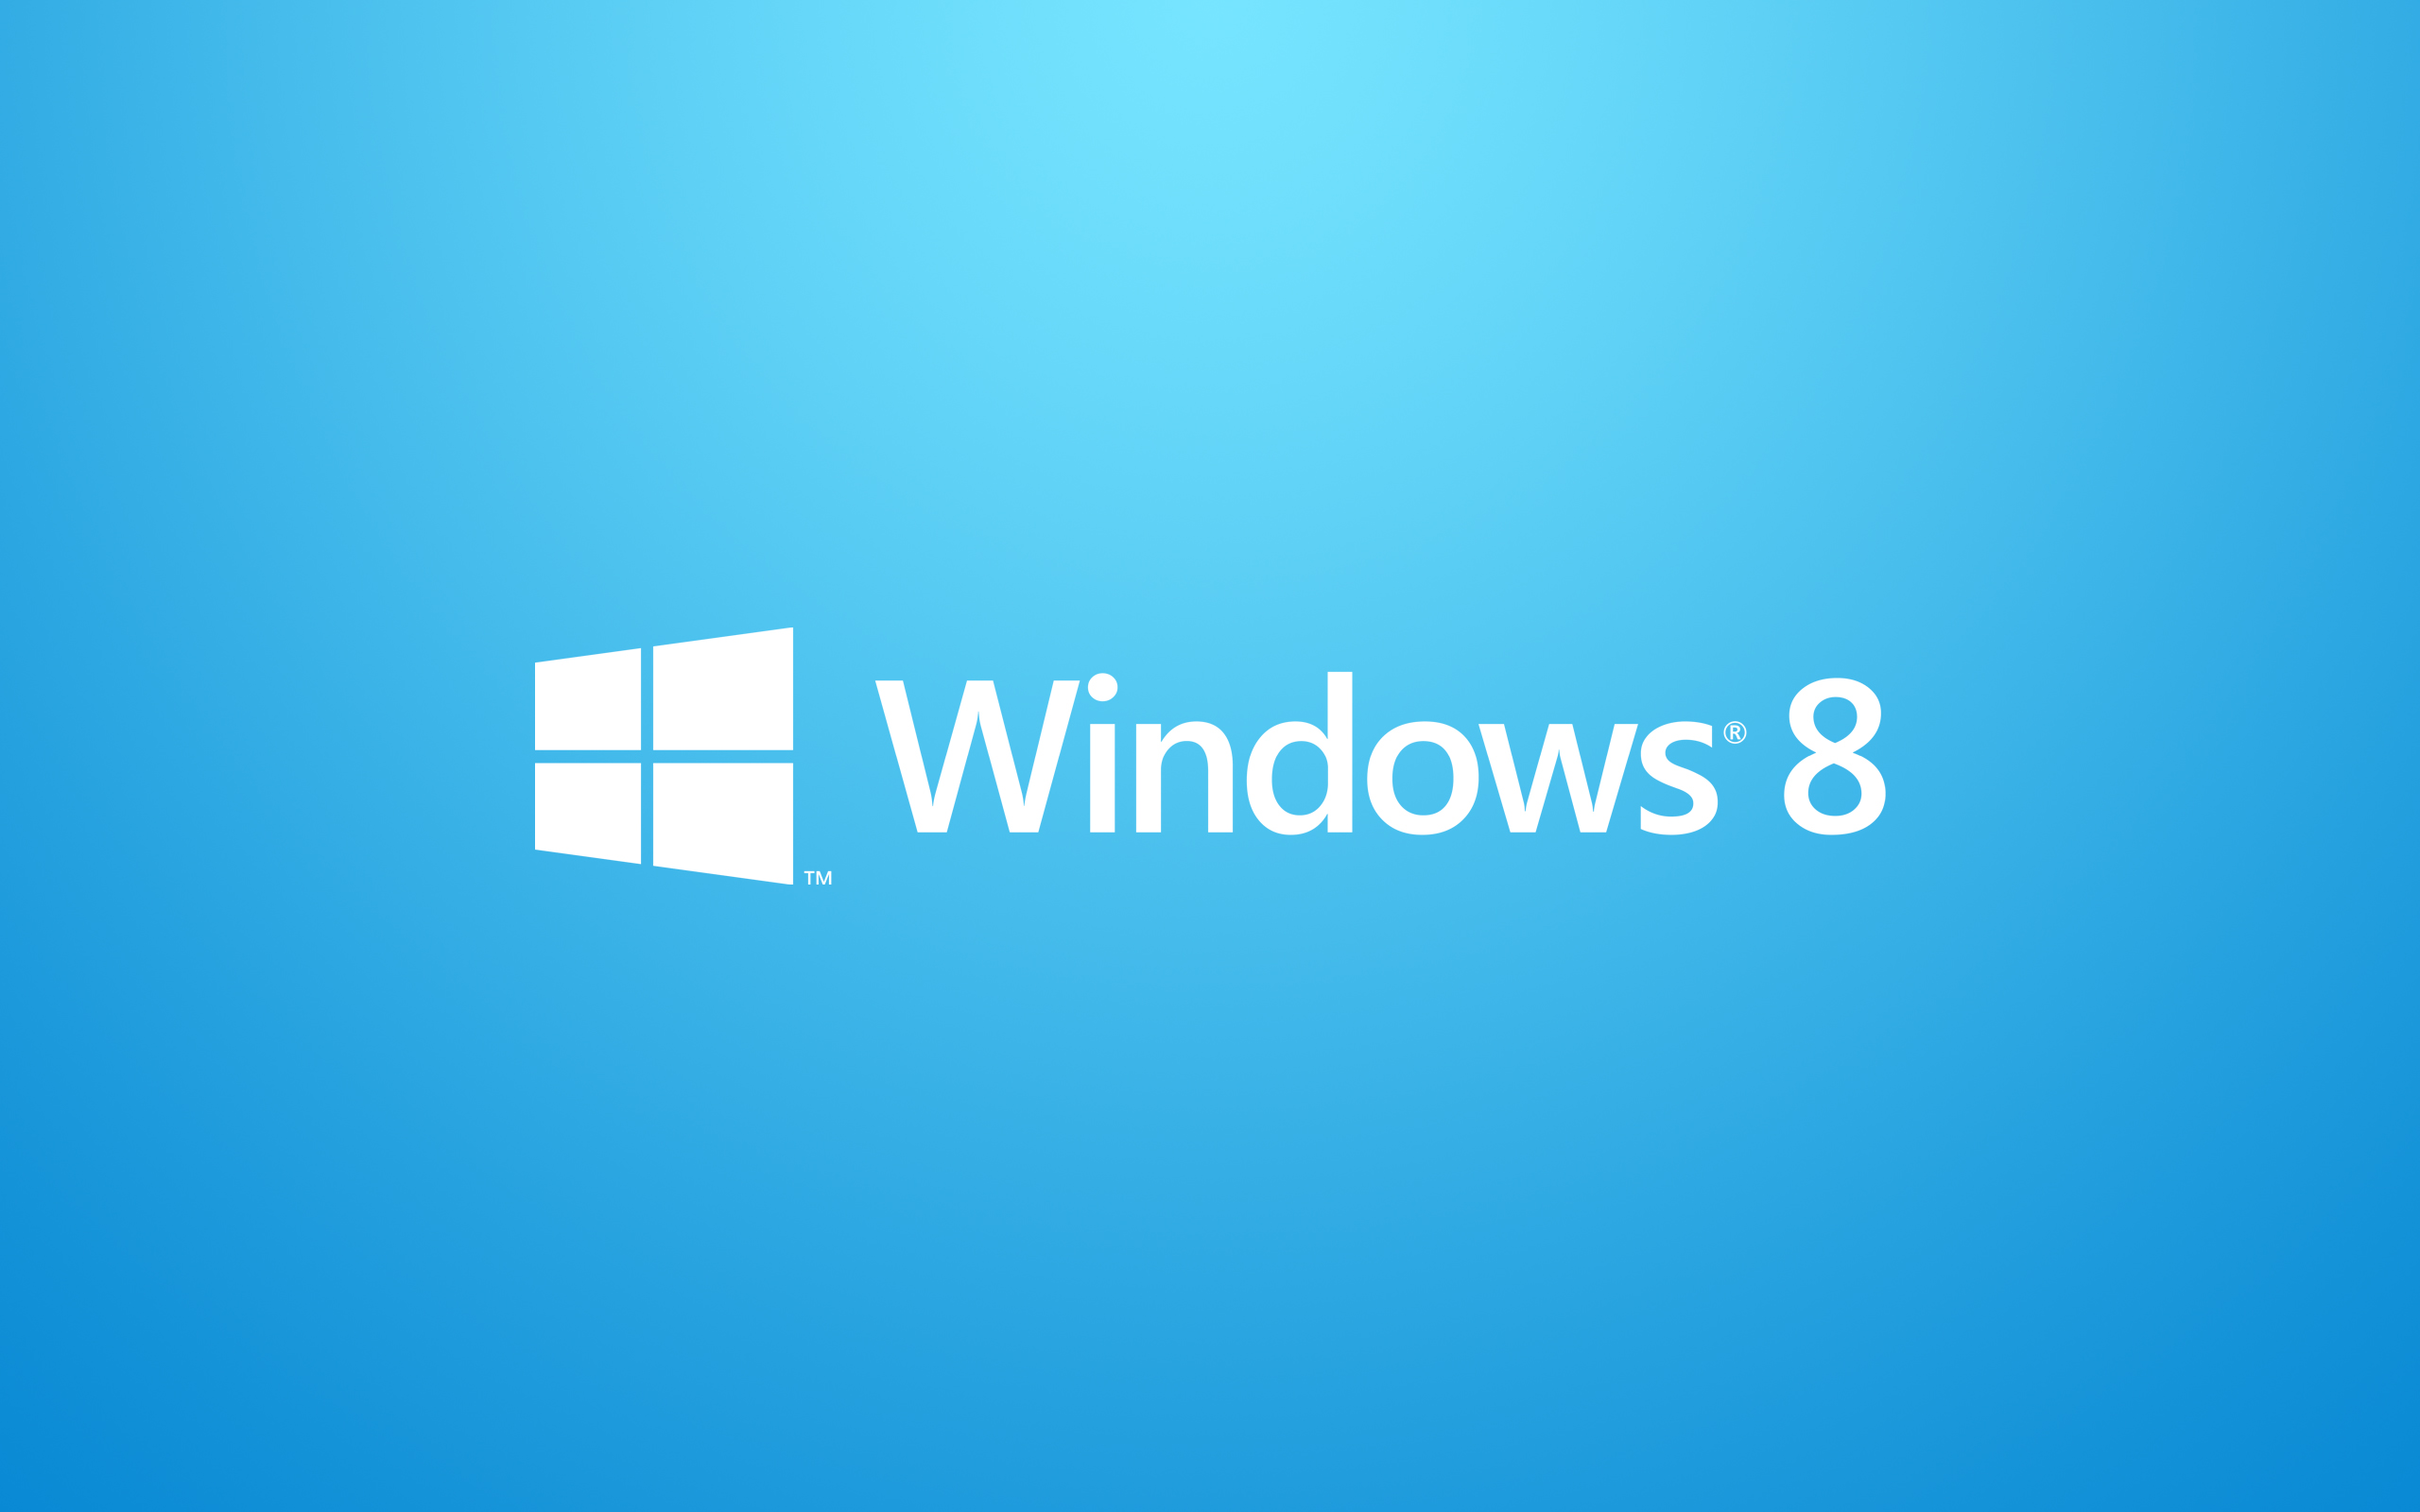 Windows 8 1 Wallpaper Downloads: Windows 8.1 Unveiled: What's New For Business Users